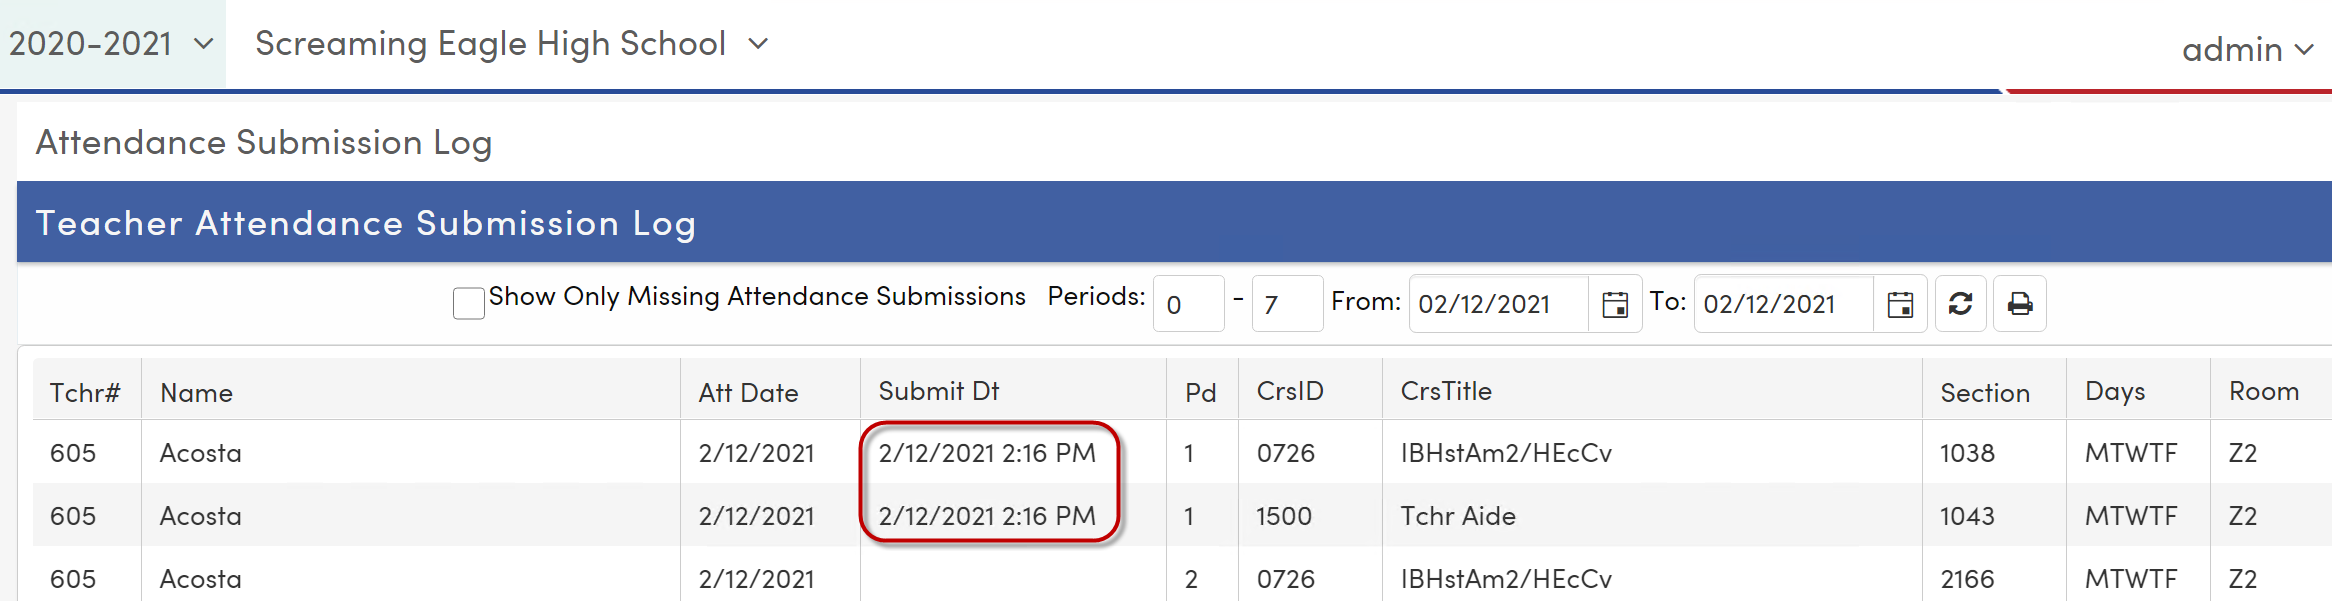 Attendance Submission Log